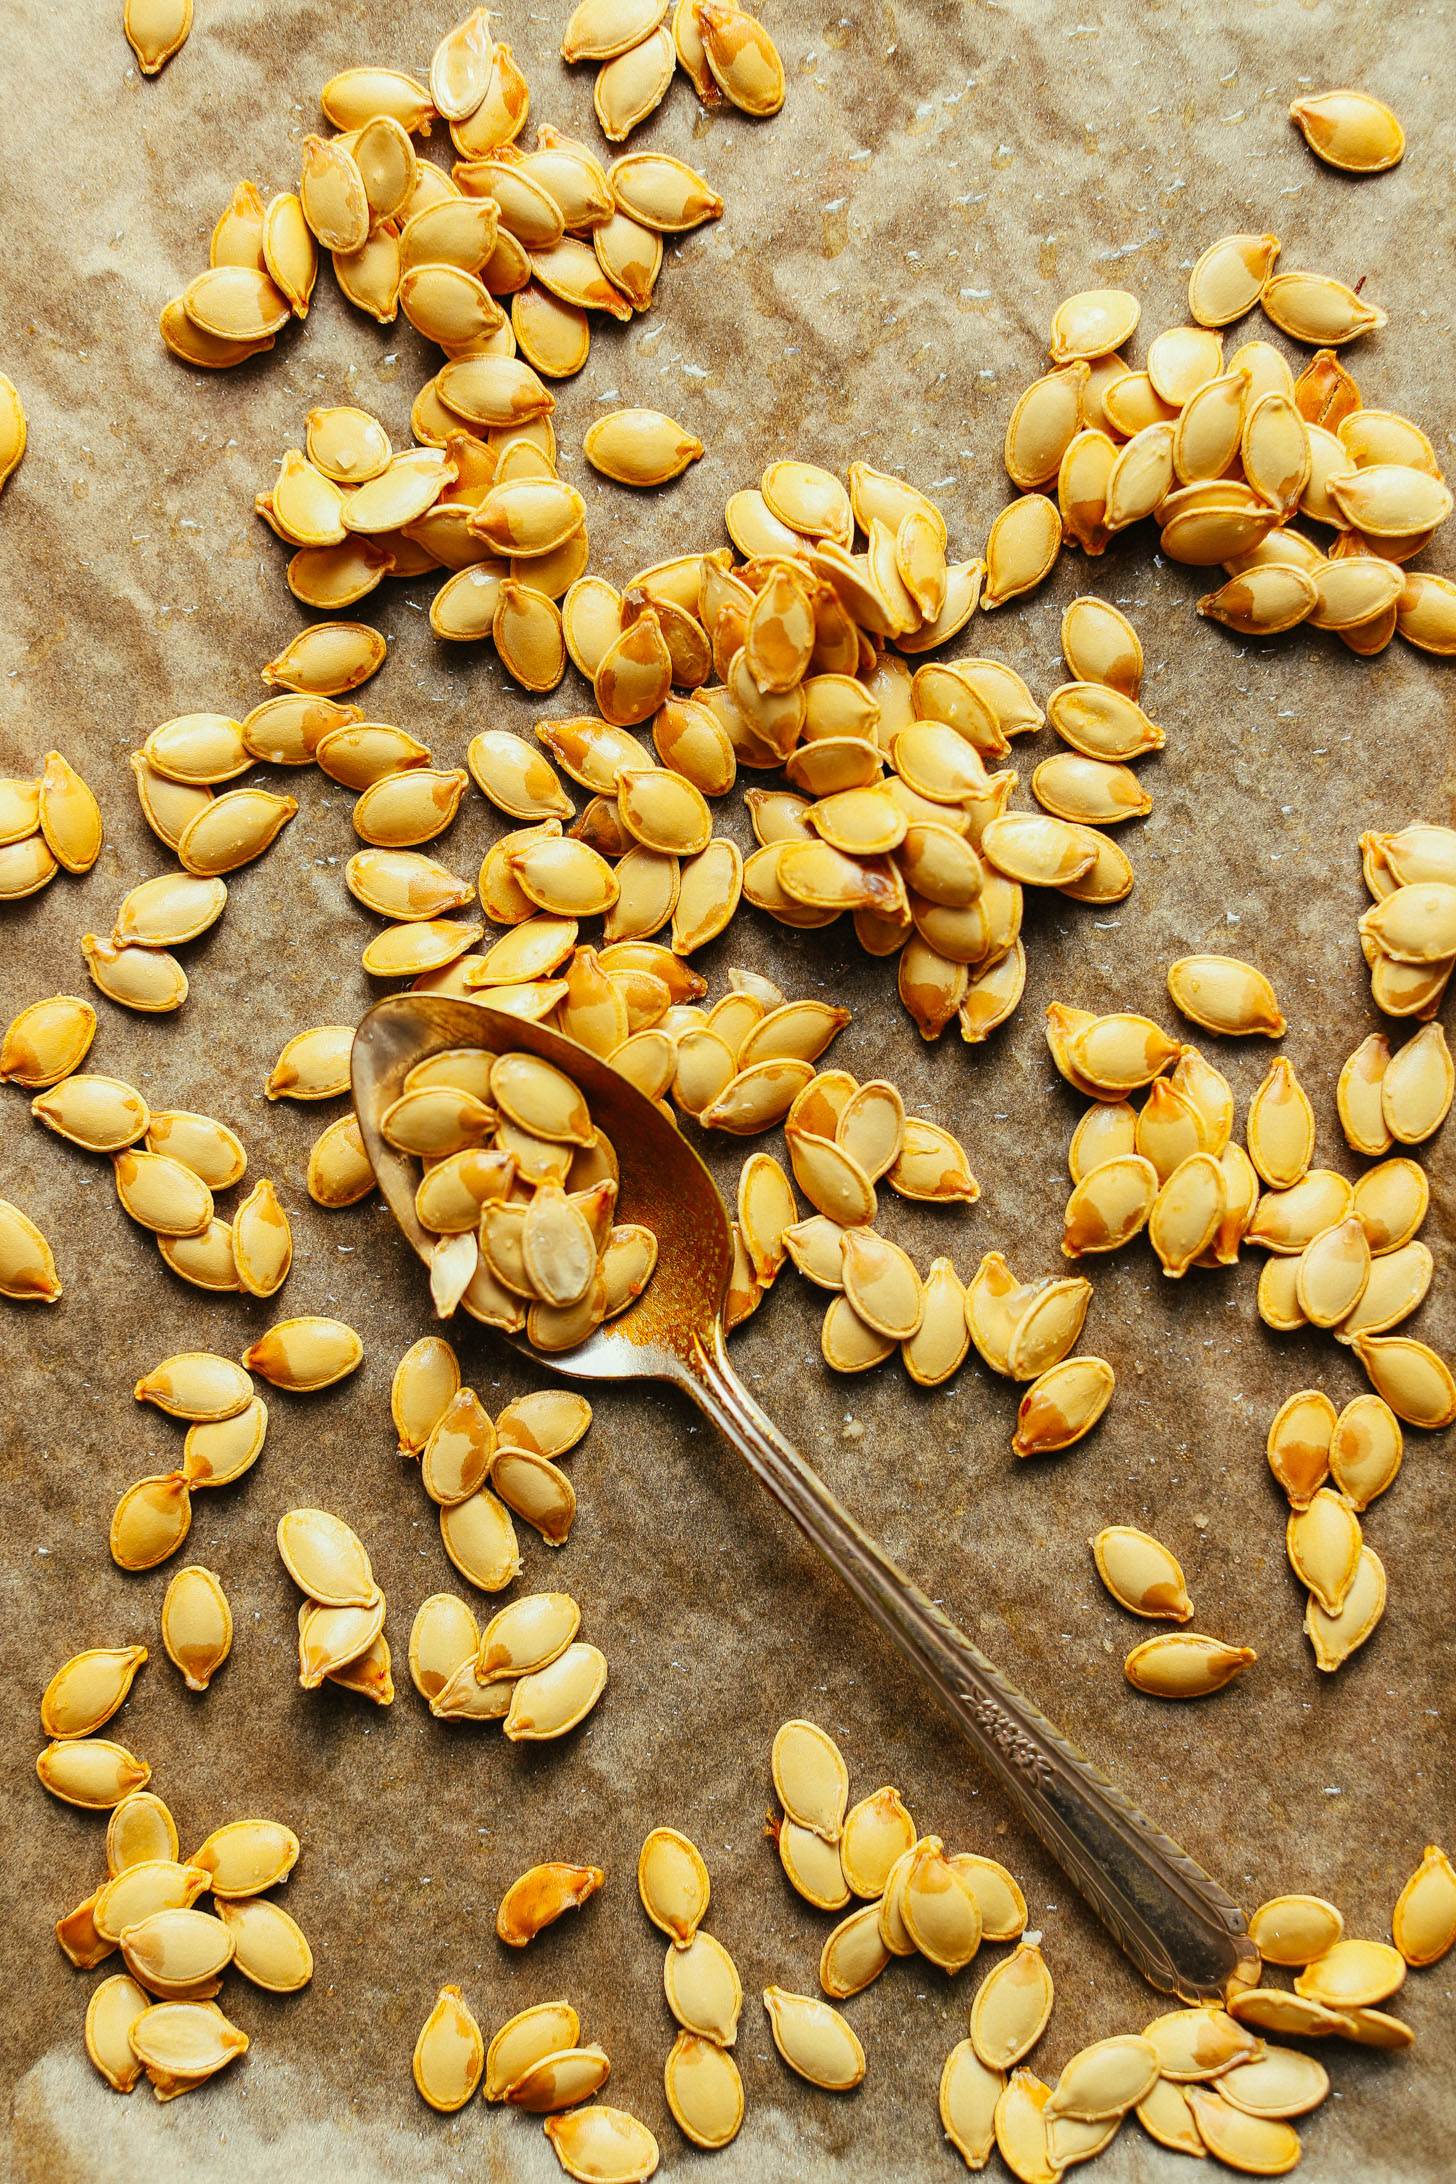 Spoon scooping up fresh pumpkin seeds to make our Roasted Pumpkin Seeds recipe